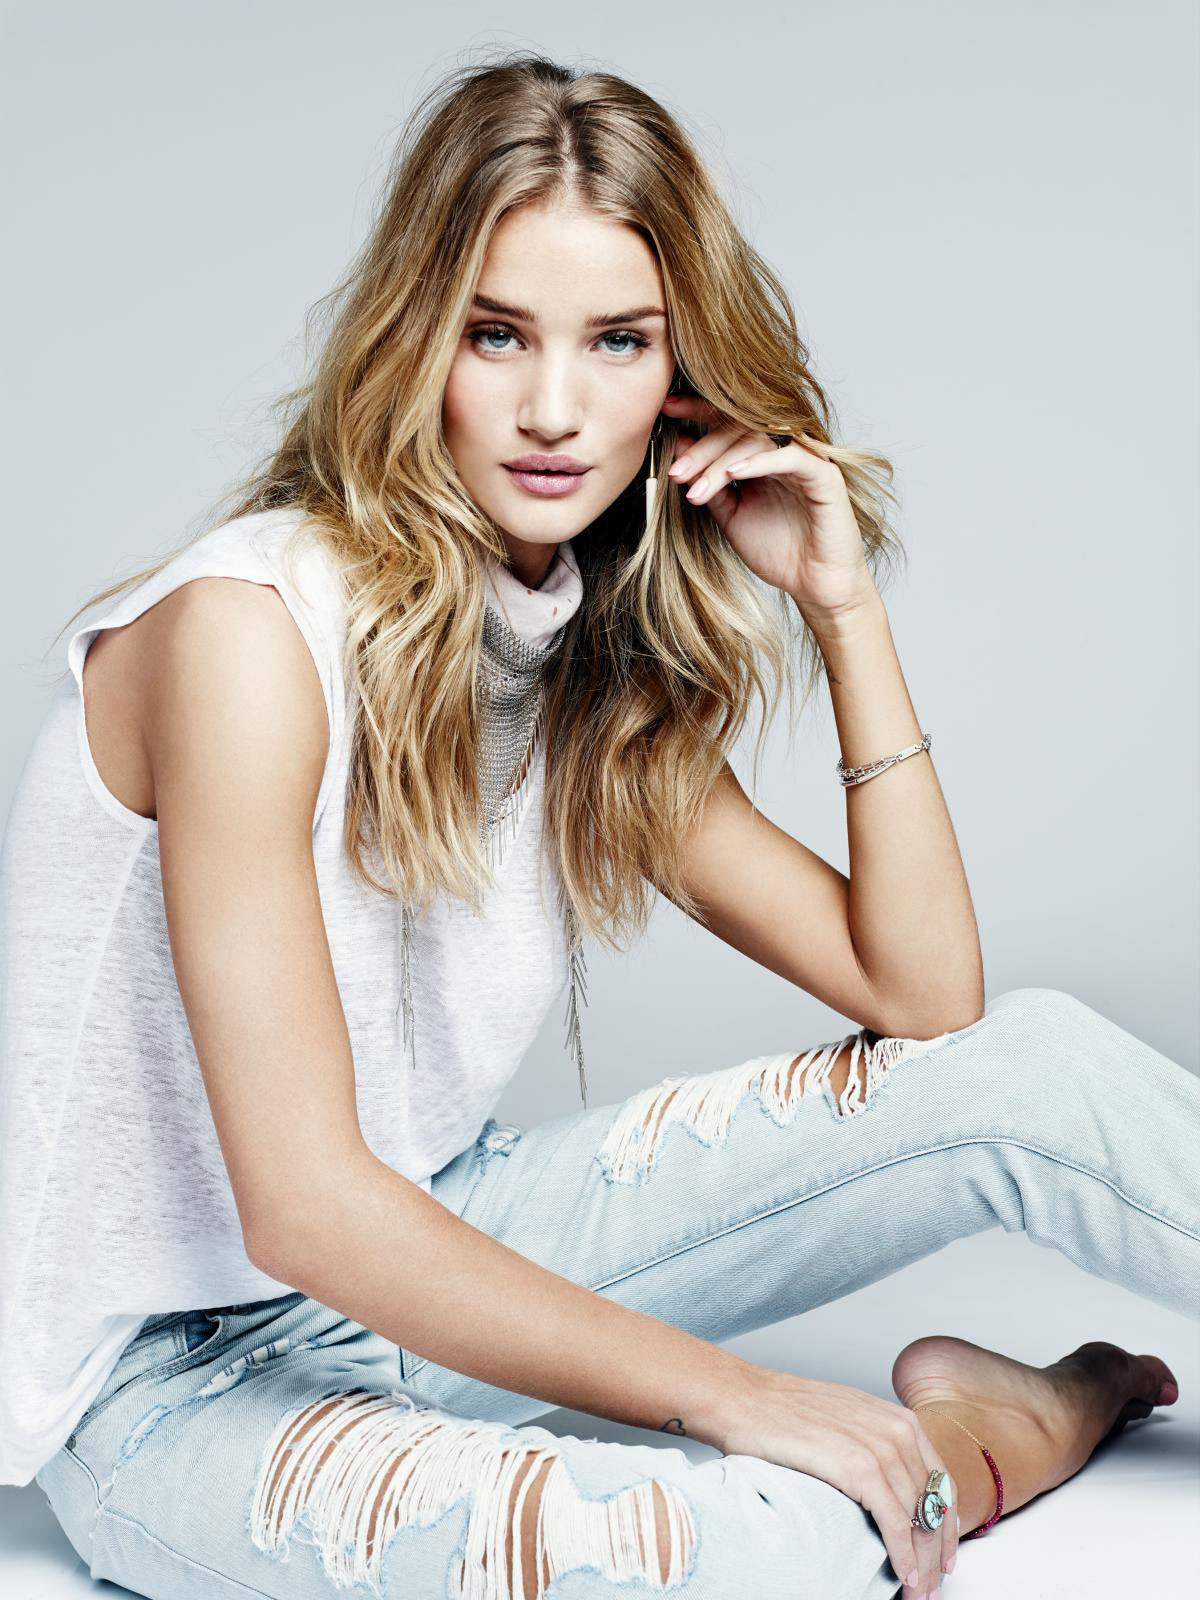 Rosie Huntington-Whiteley @ the M&S Lingerie Launch in